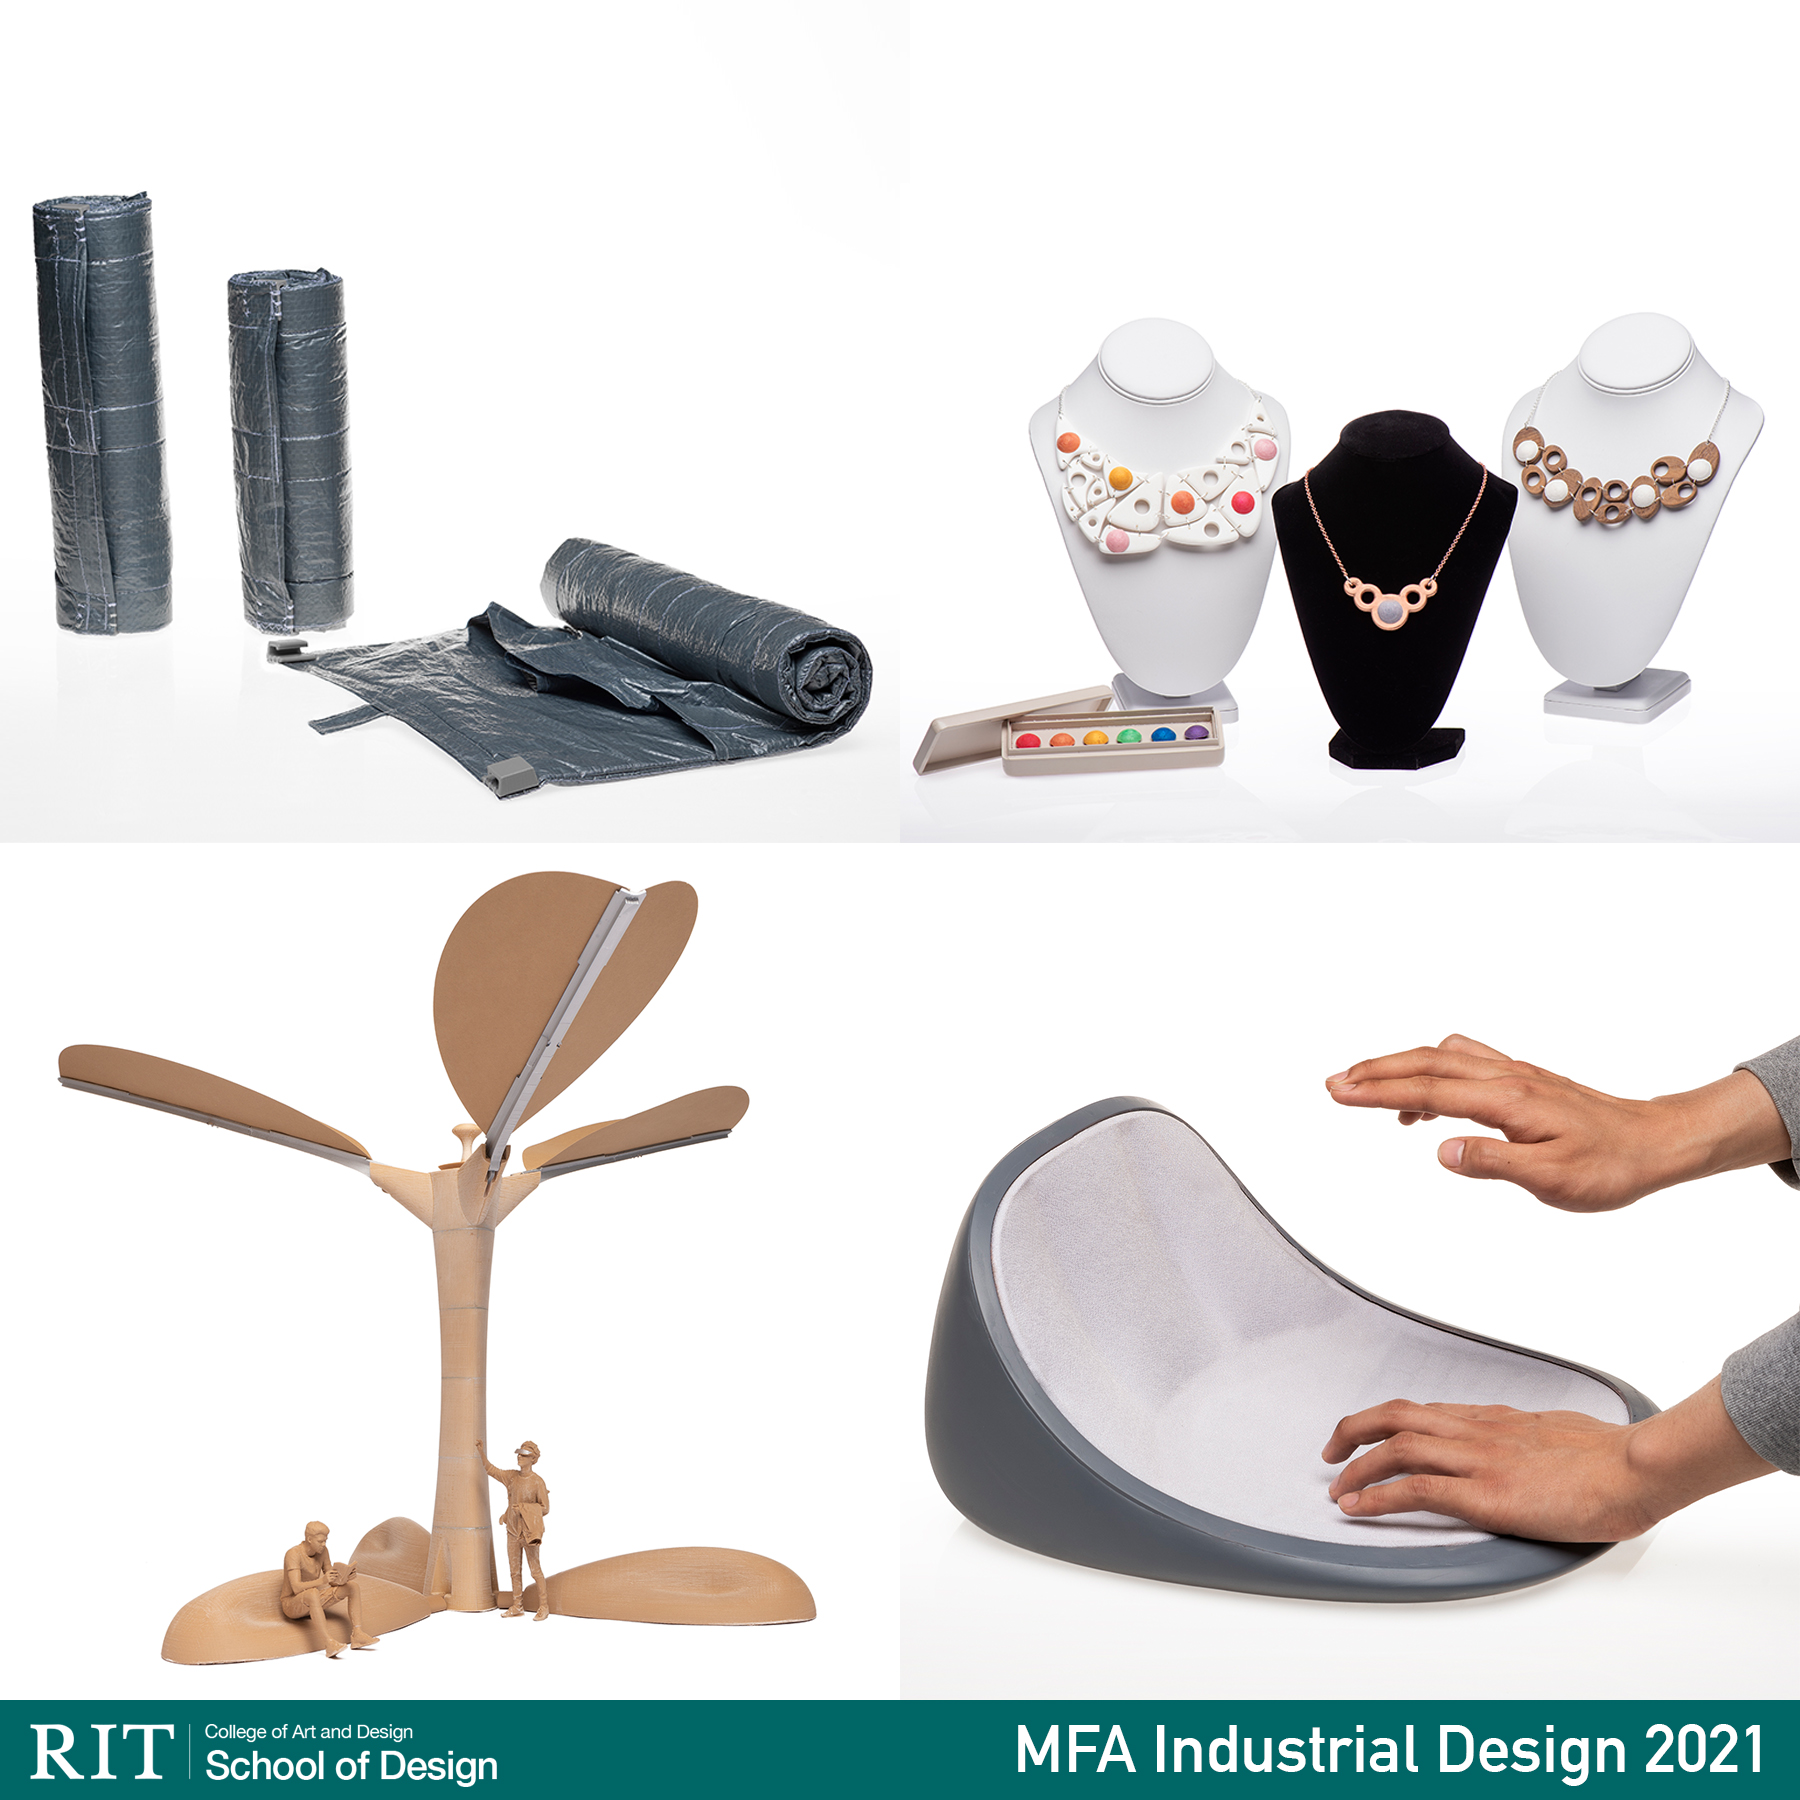 Images of industrial projects - safety blanket, sectional jewelry, social pod resembling a palm tree